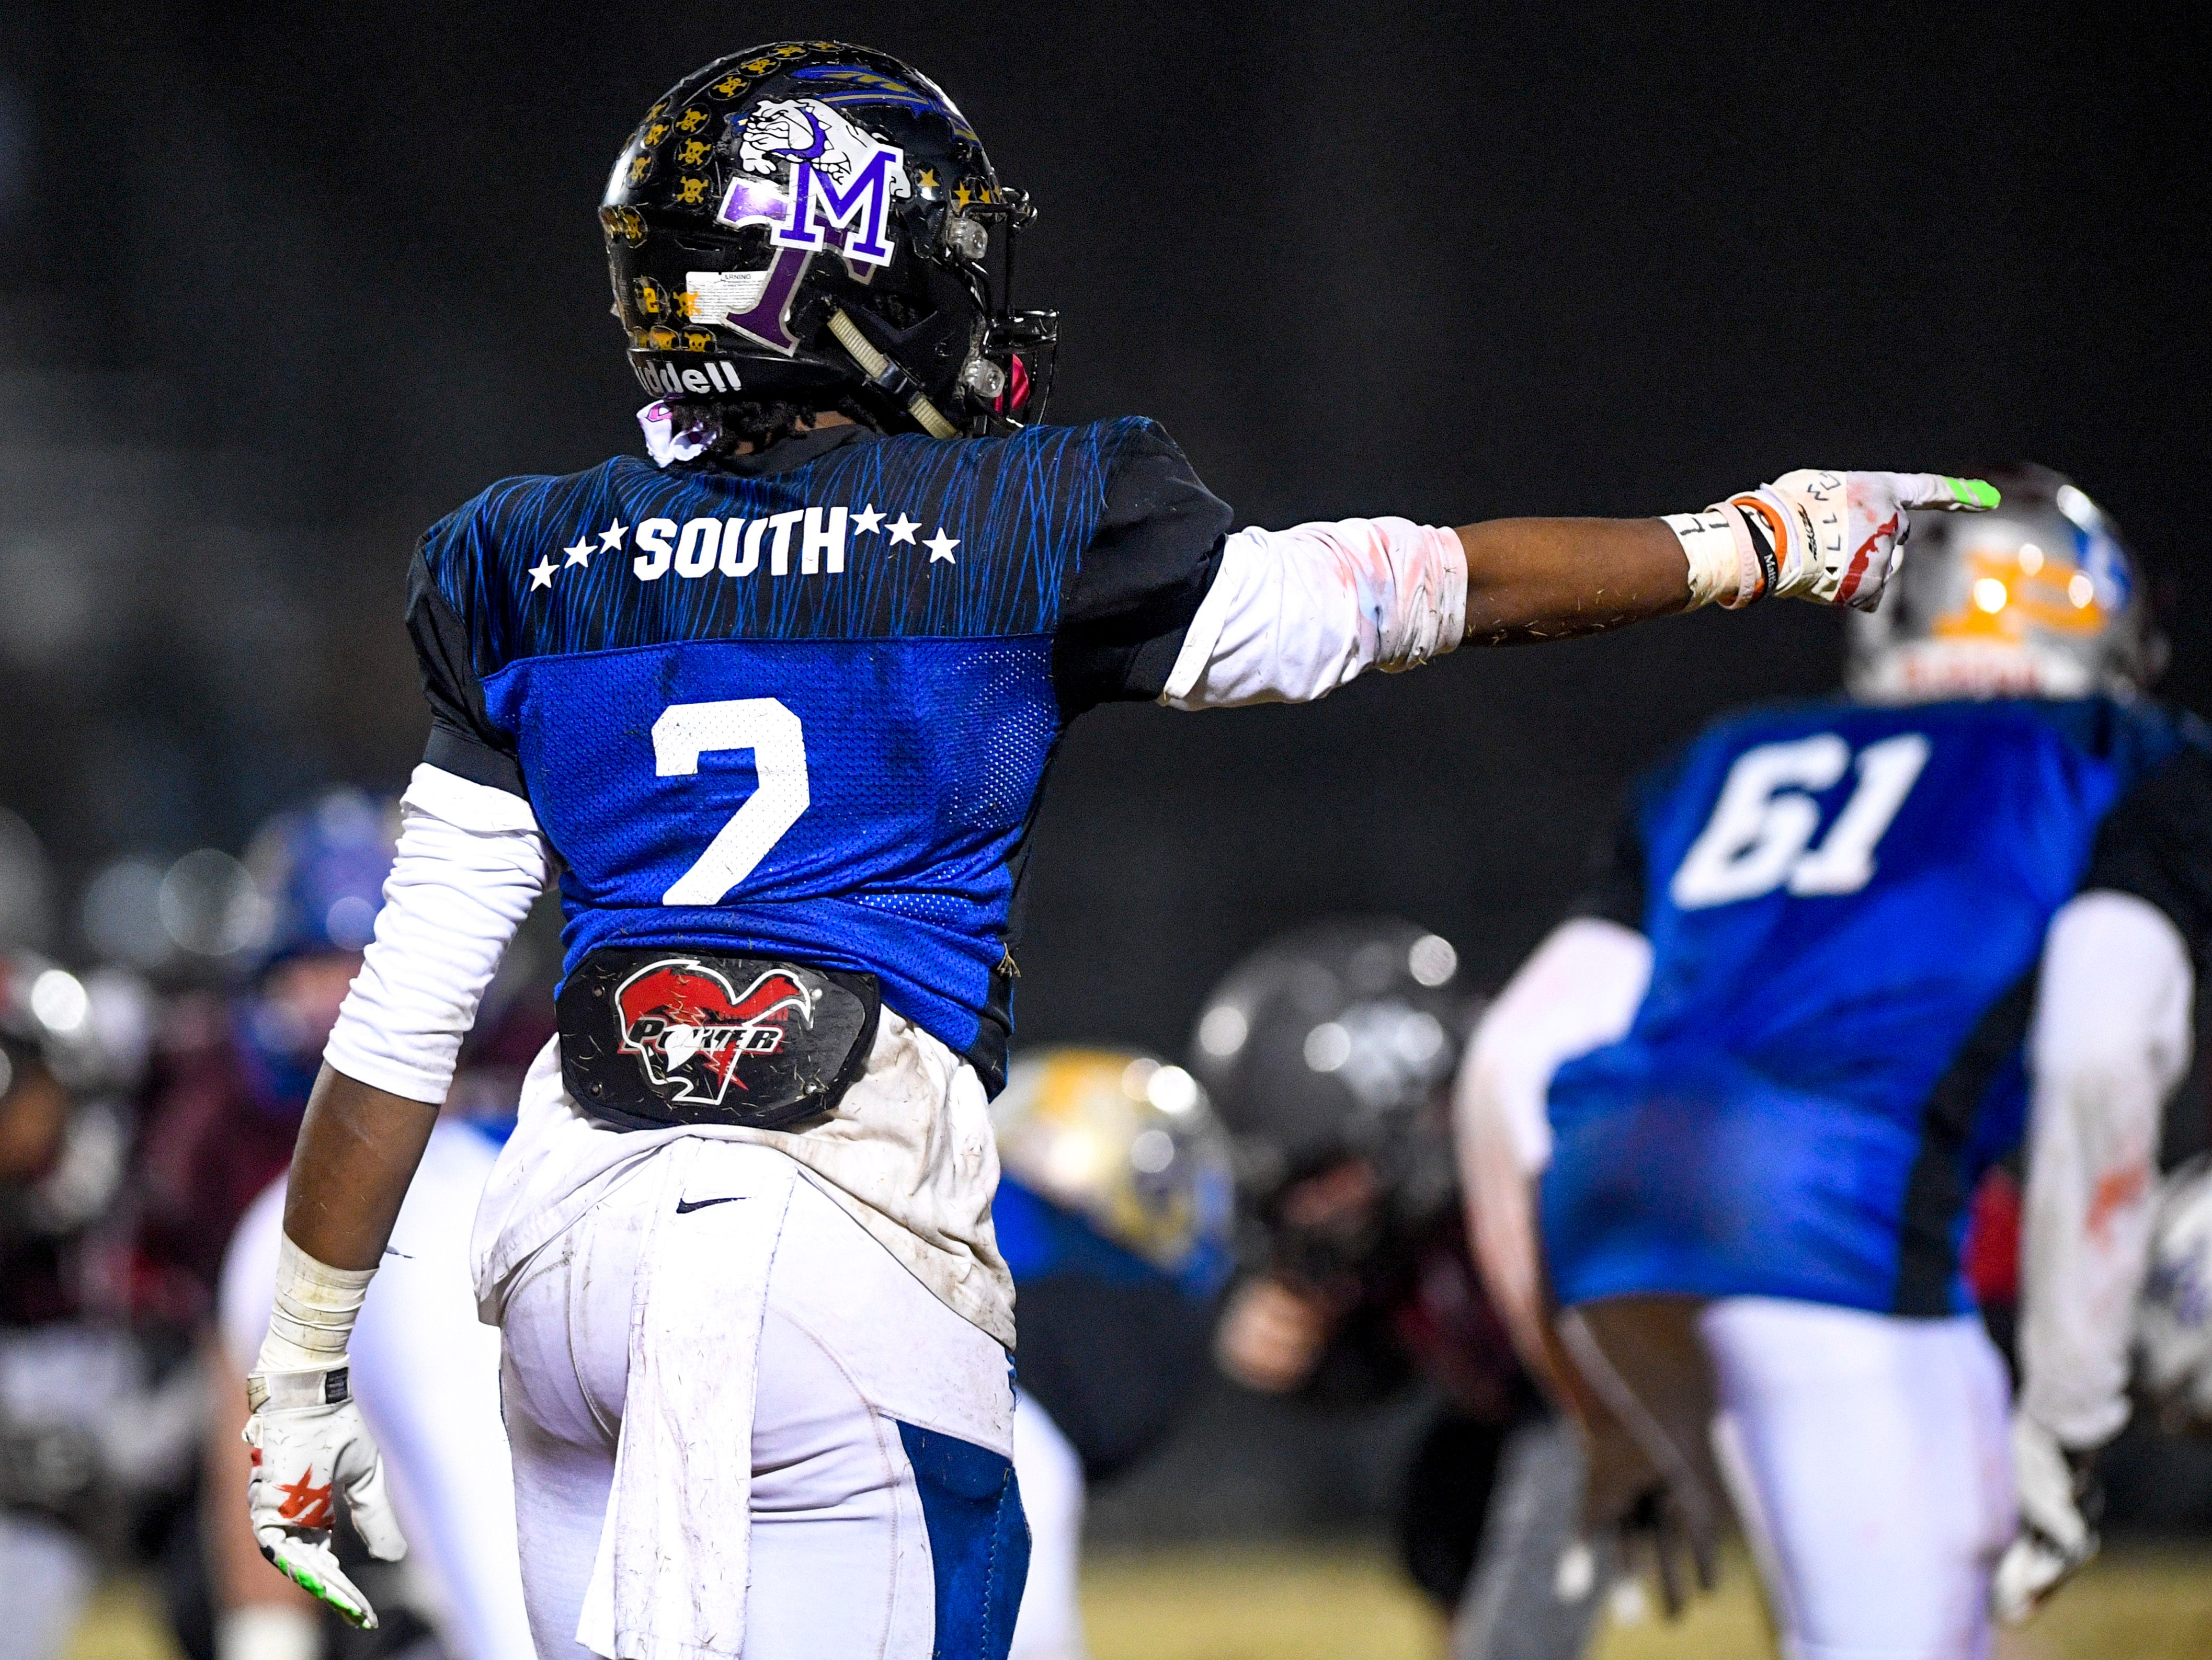 """Peabody's Courtlen Wade (2) points to an opposing player and yells """"He's scared"""" to intimidate them during the West Tennessee All-Star football game at University School of Jackson in Jackson, Tenn., on Friday, Dec. 7, 2018."""